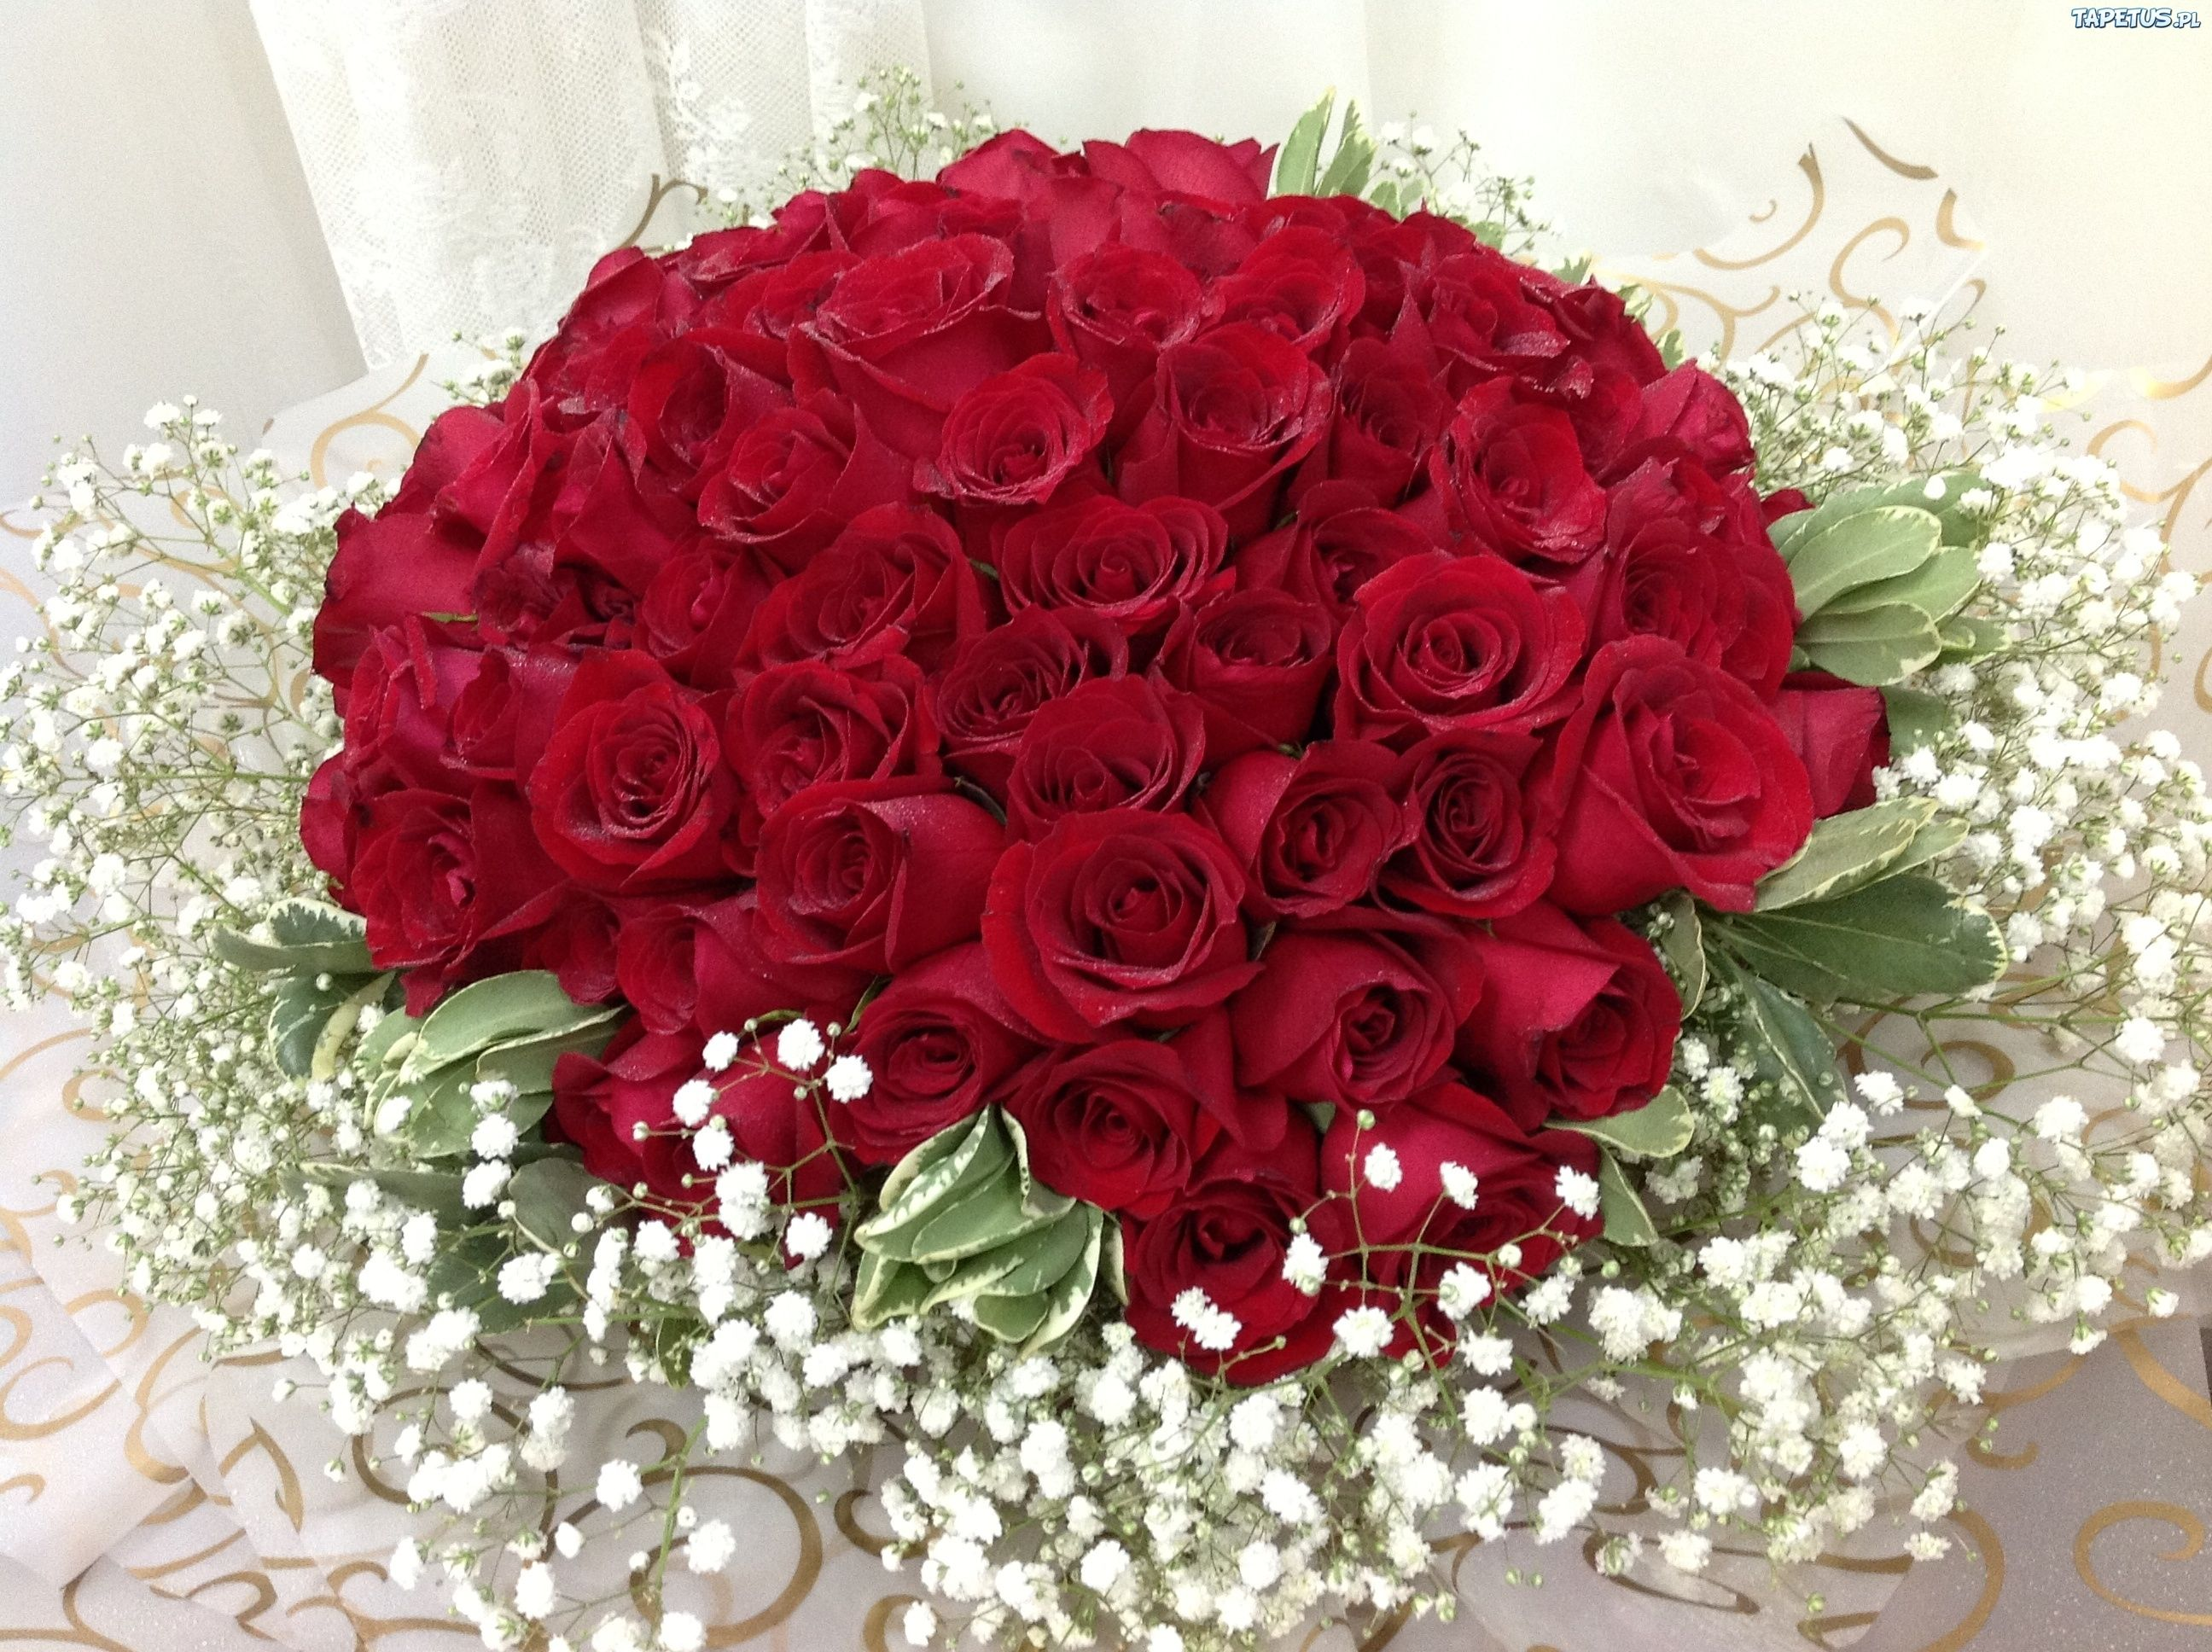 Bukiet Czerwonych Roz Tapety Christmas Wreaths Beautiful Red Roses Red Roses